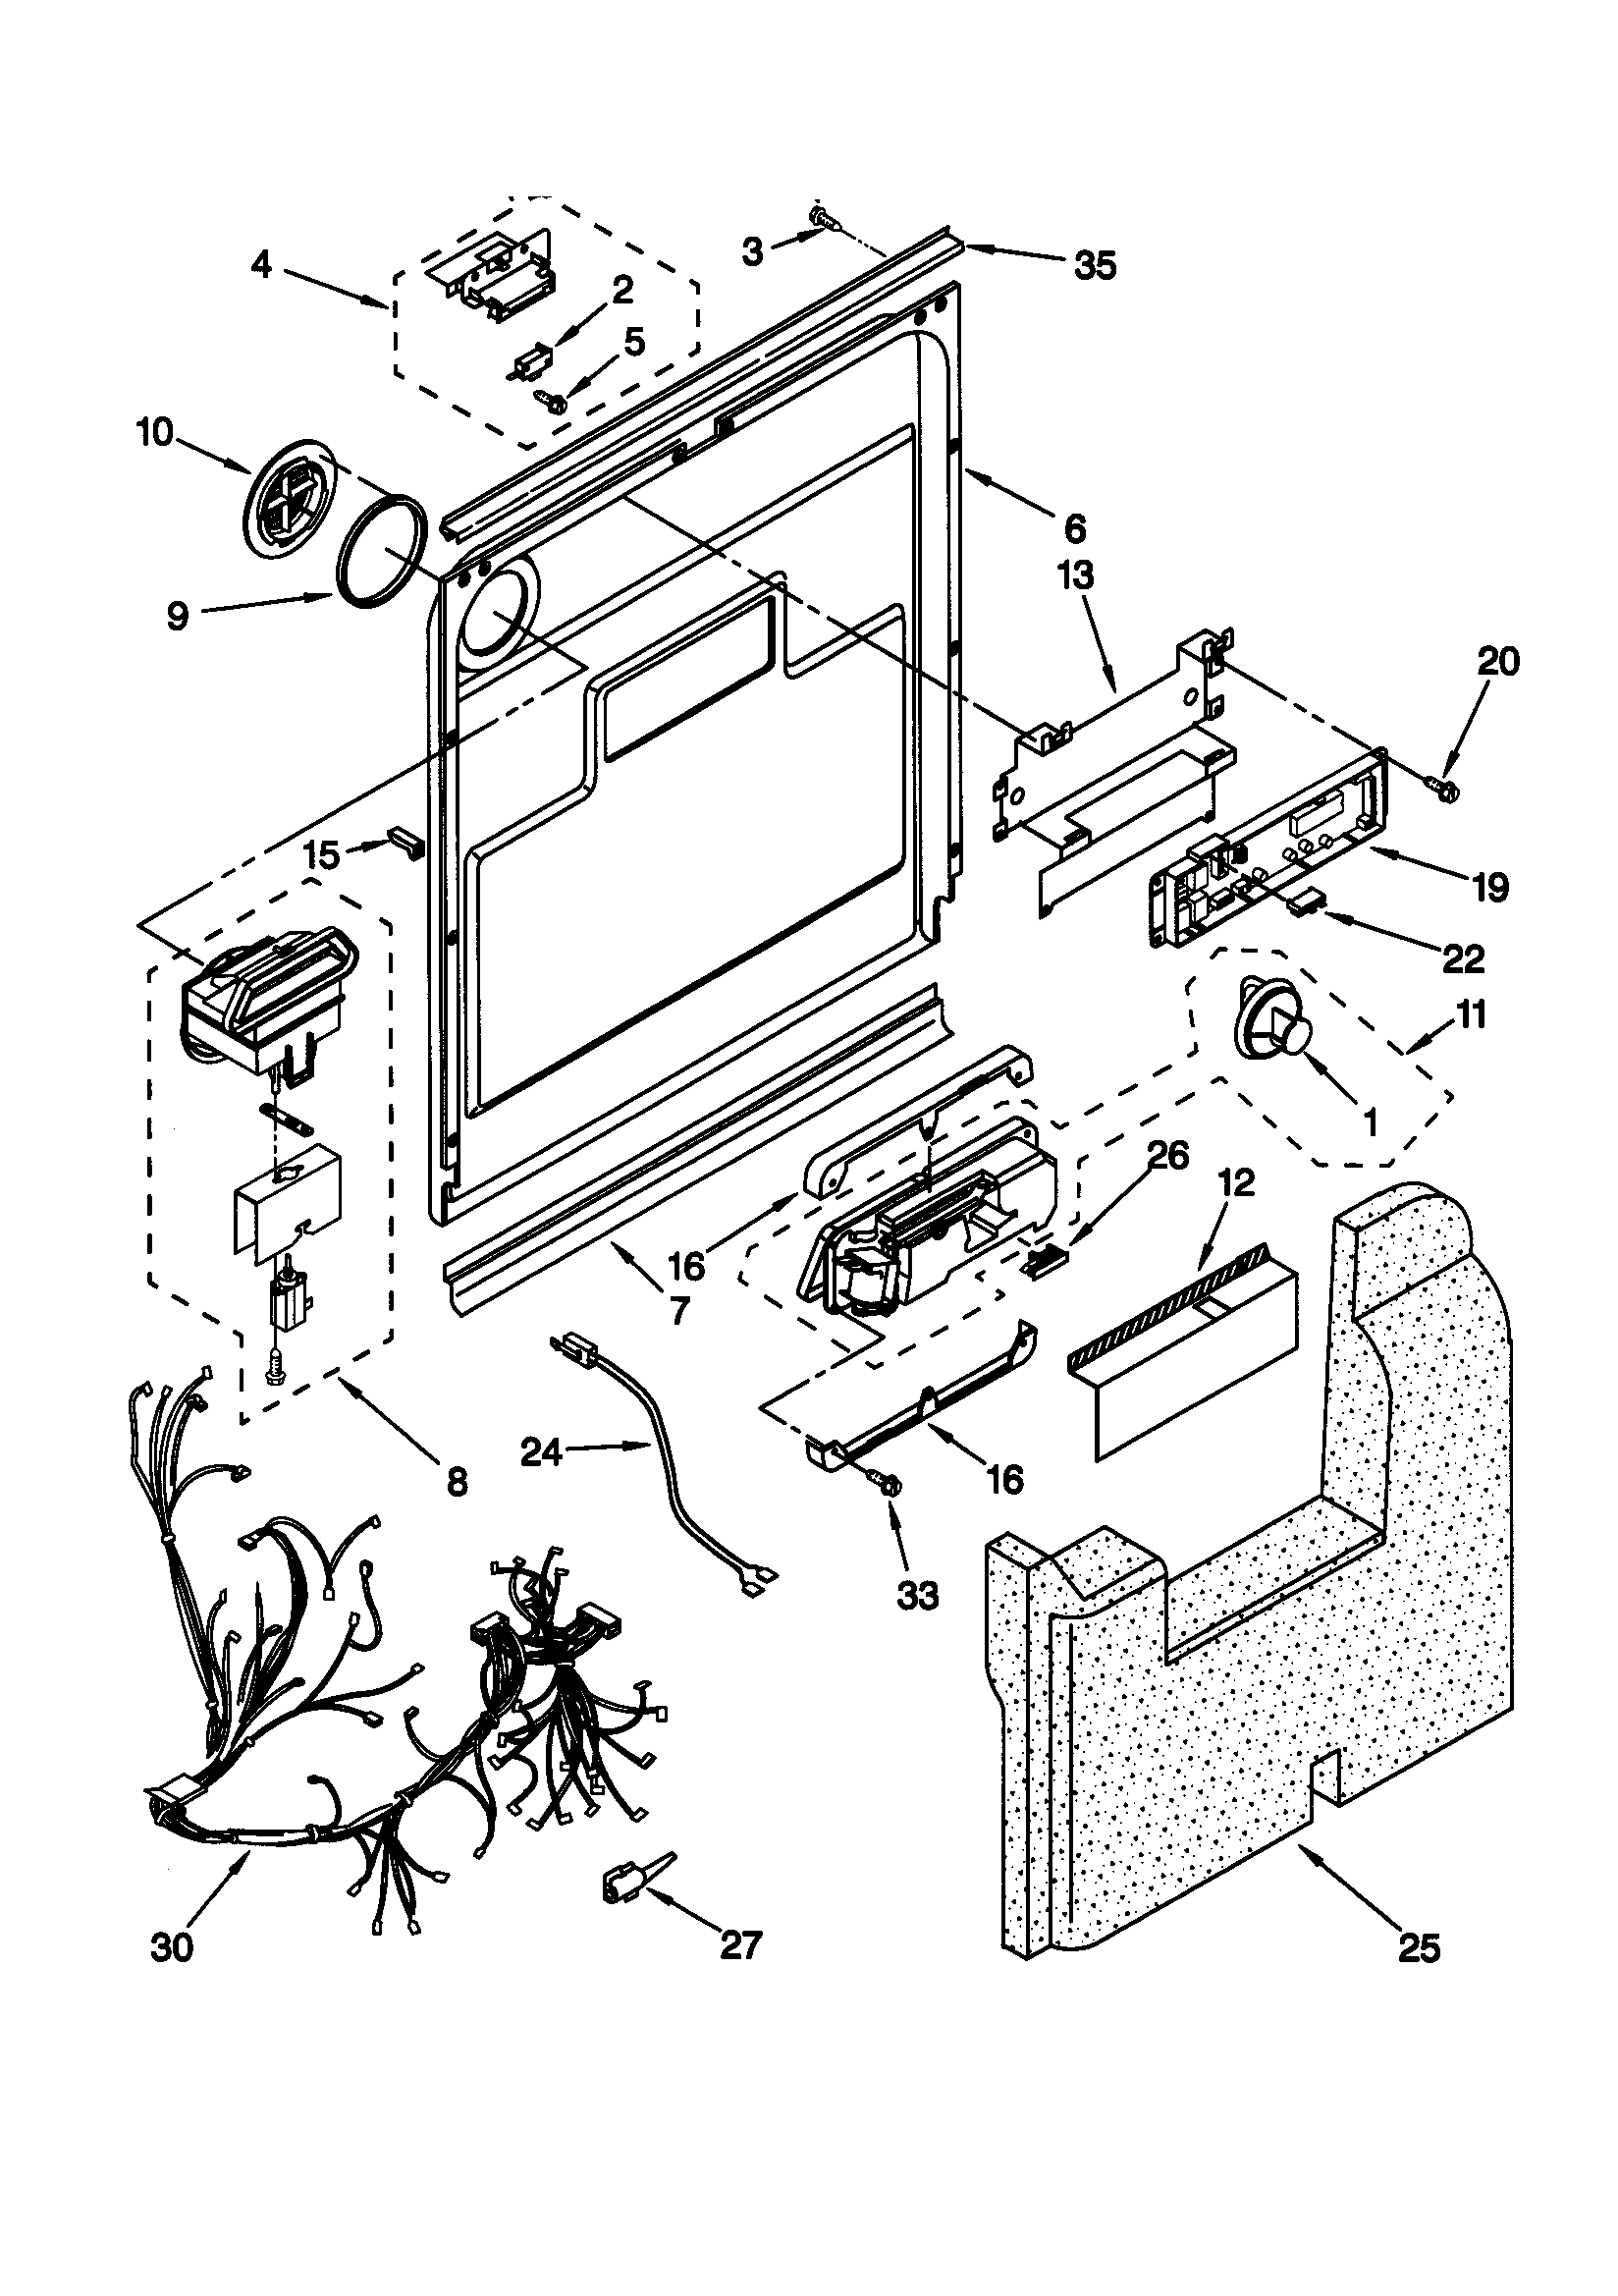 drain connections diagram and parts list for kenmore dishwasherpartskenmore 66515982990 timer stove clocks and appliance timers drain connections diagram and parts list for kenmore dishwasherparts